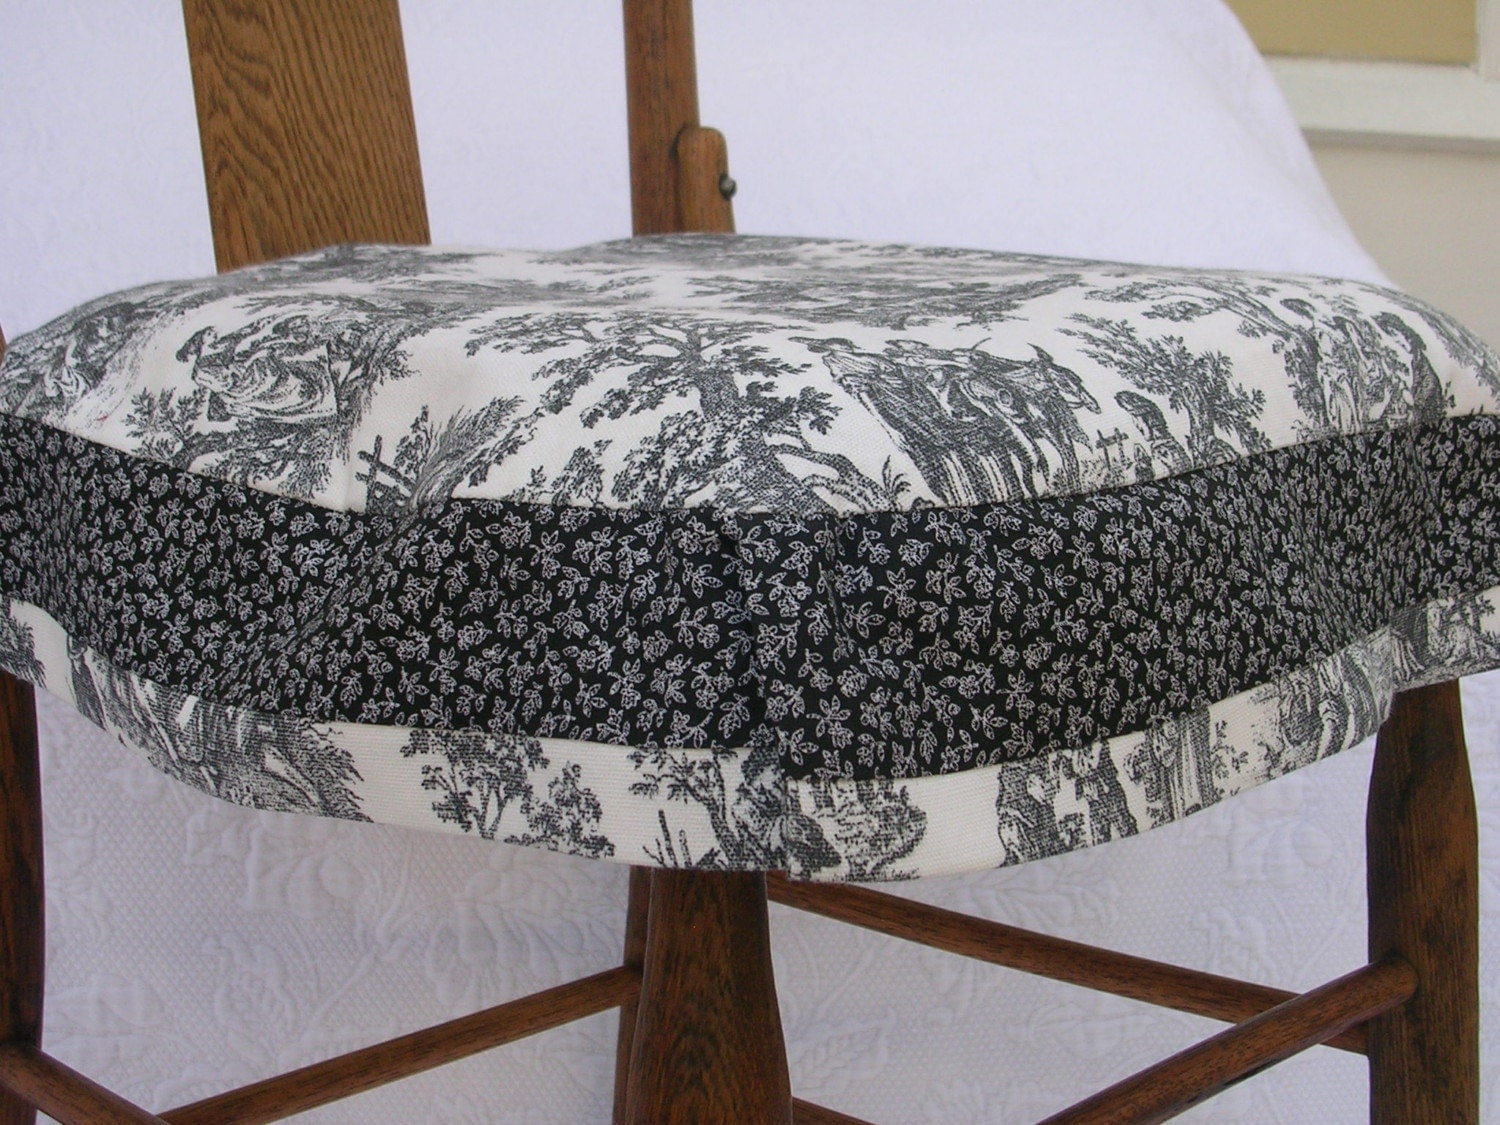 Slipcovers For Chair Cushions Black And White Toile With